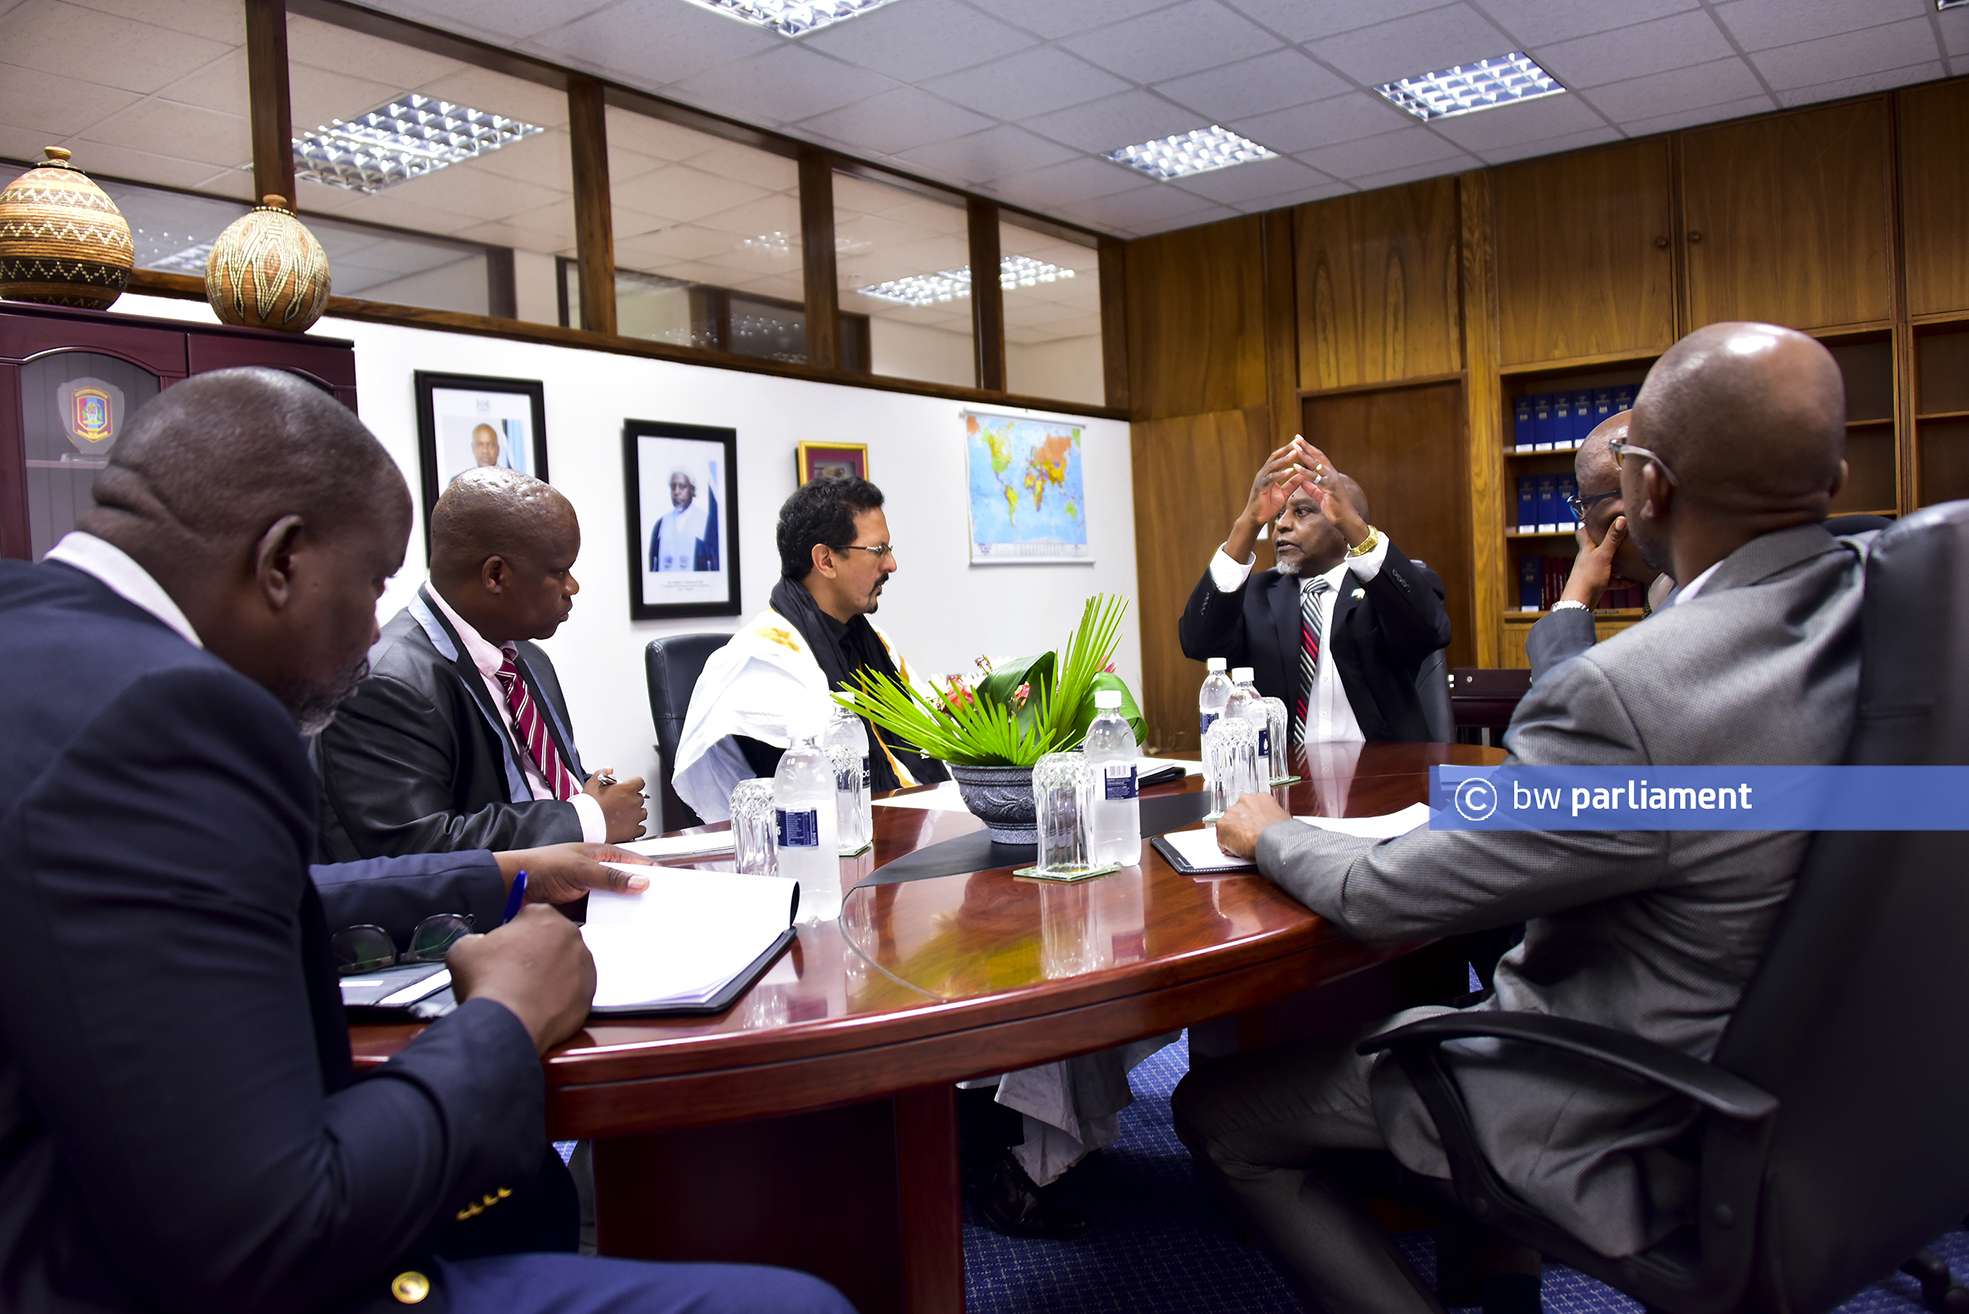 THE SAHARAWI ARAB DEMOCRATIC AMBASSADOR TO BOTSWANA PAID COURTESY CALL ON THE SPEAKER